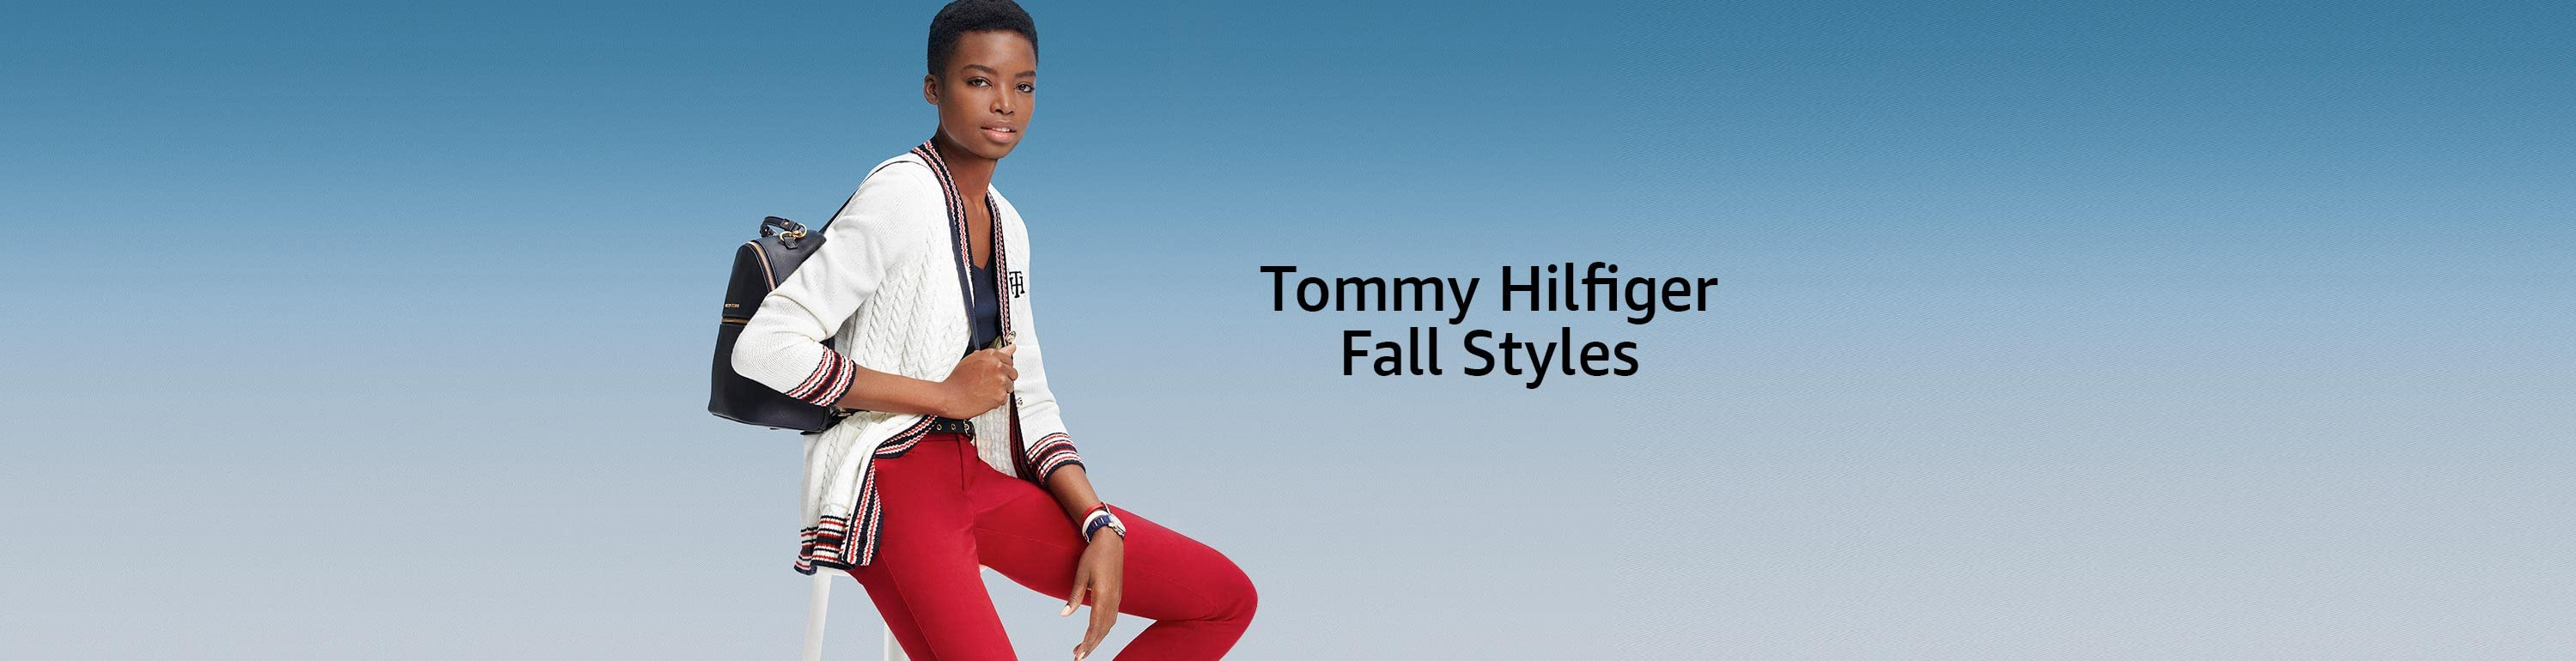 Tommy Hilfiger Fall Styles